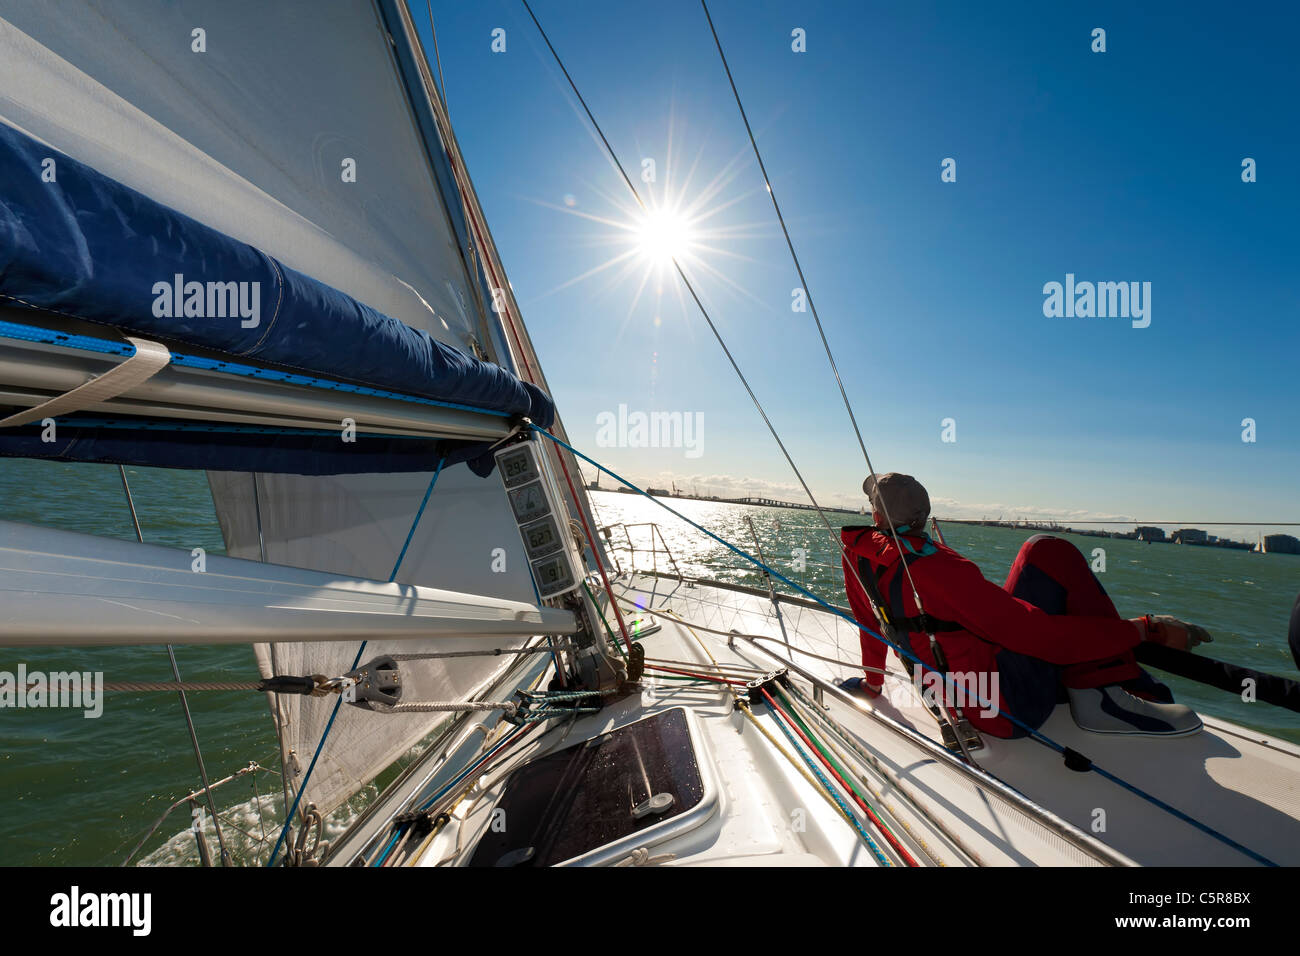 Man relaxing on yacht in the sun. - Stock Image